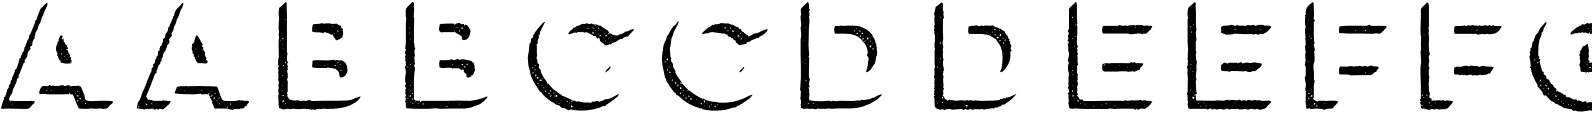 Lulo Two Bold Font